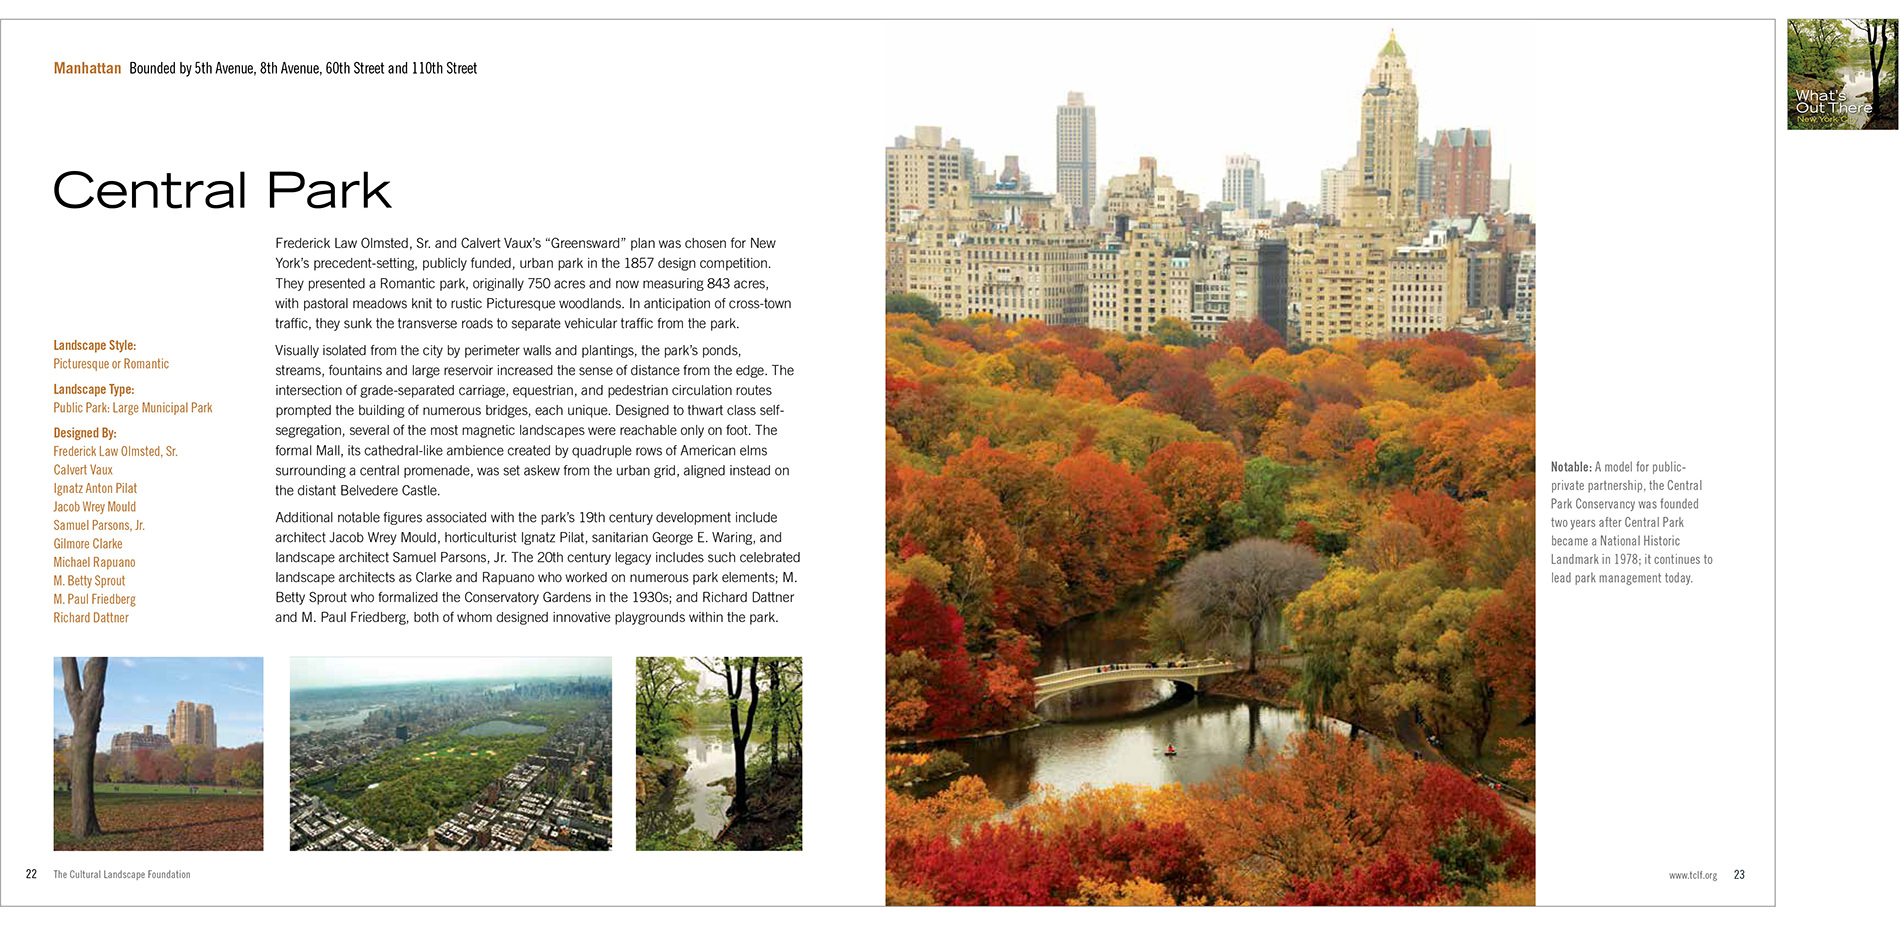 009 Essay Example Landscape Architecture Wot 3 Stunning College Argumentative Full